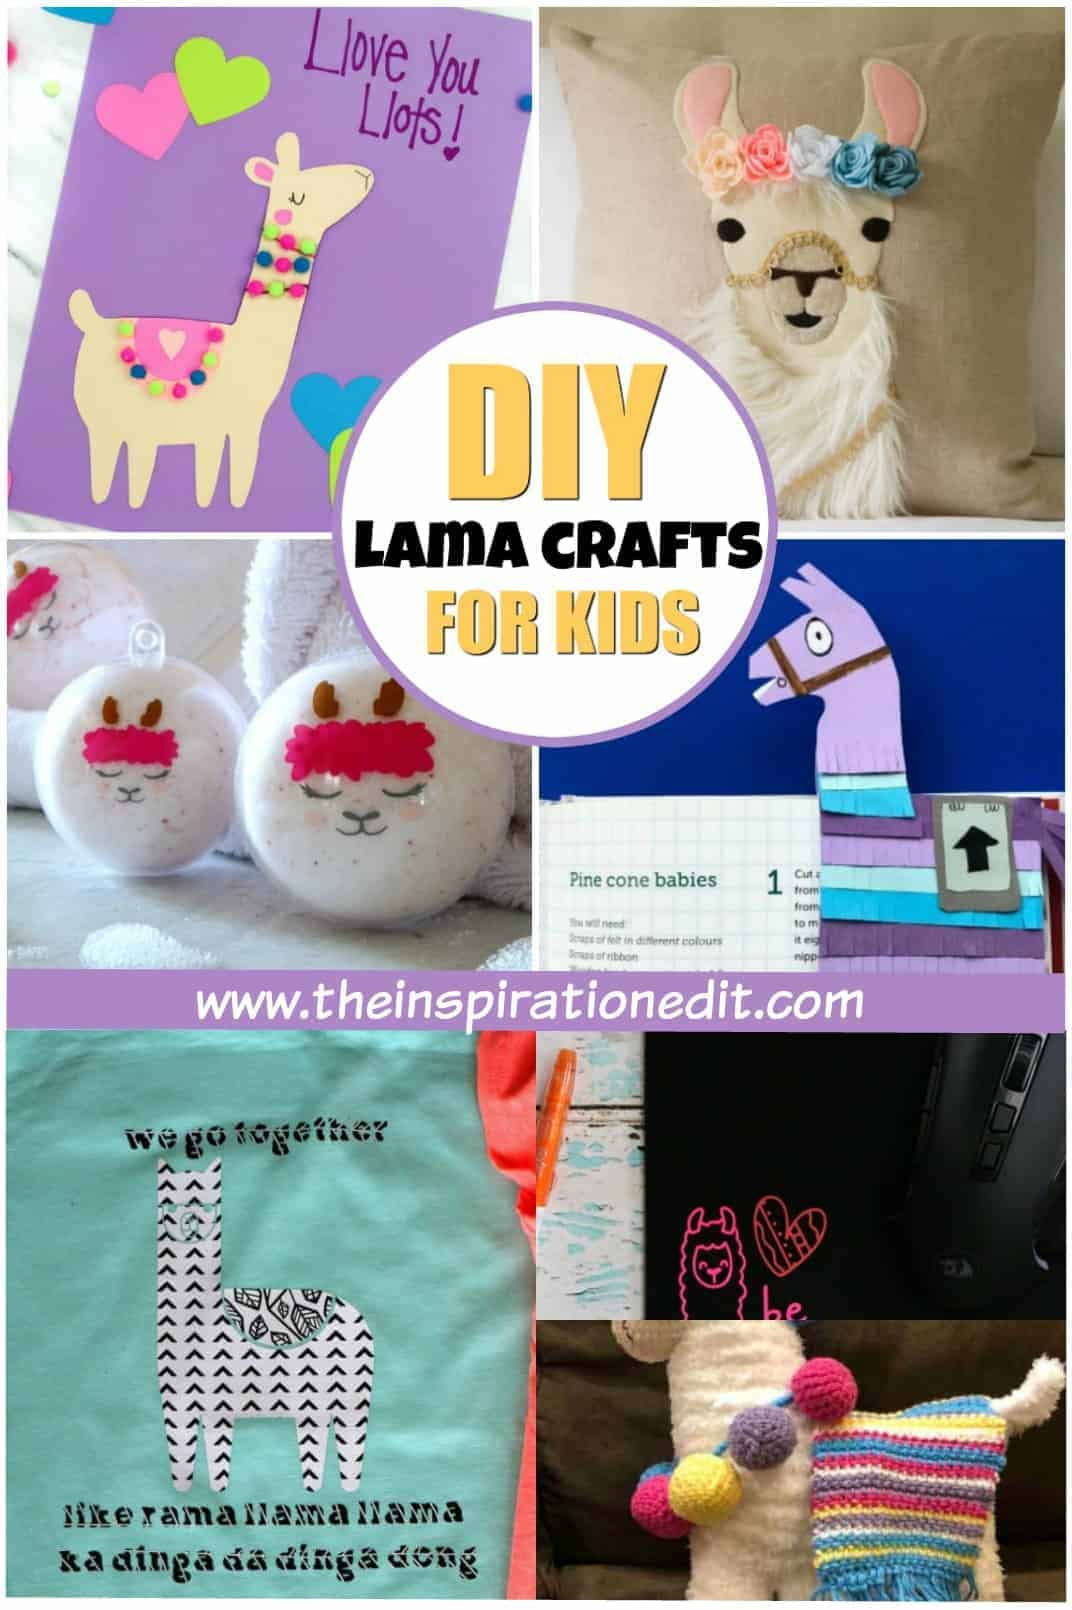 lama crafts for kids